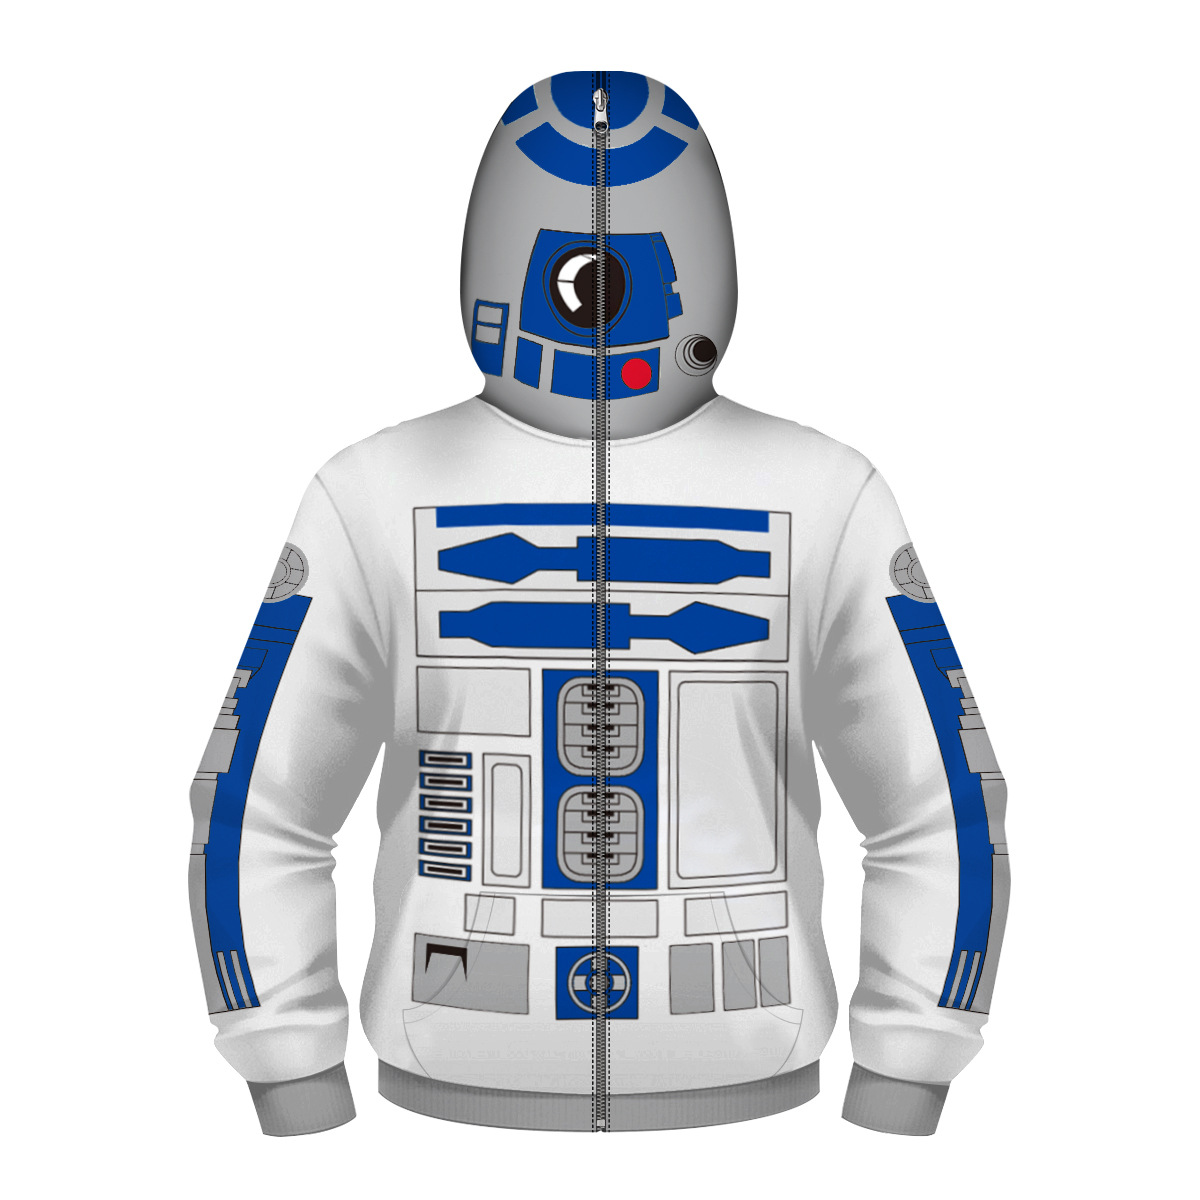 STAR WARS R2D2 - 3D STREET WEAR Cosplay Costume New Arrival Streetwear Kid Hip Hop Sweatshirts Spring Autumn Hooded Sweatshirt